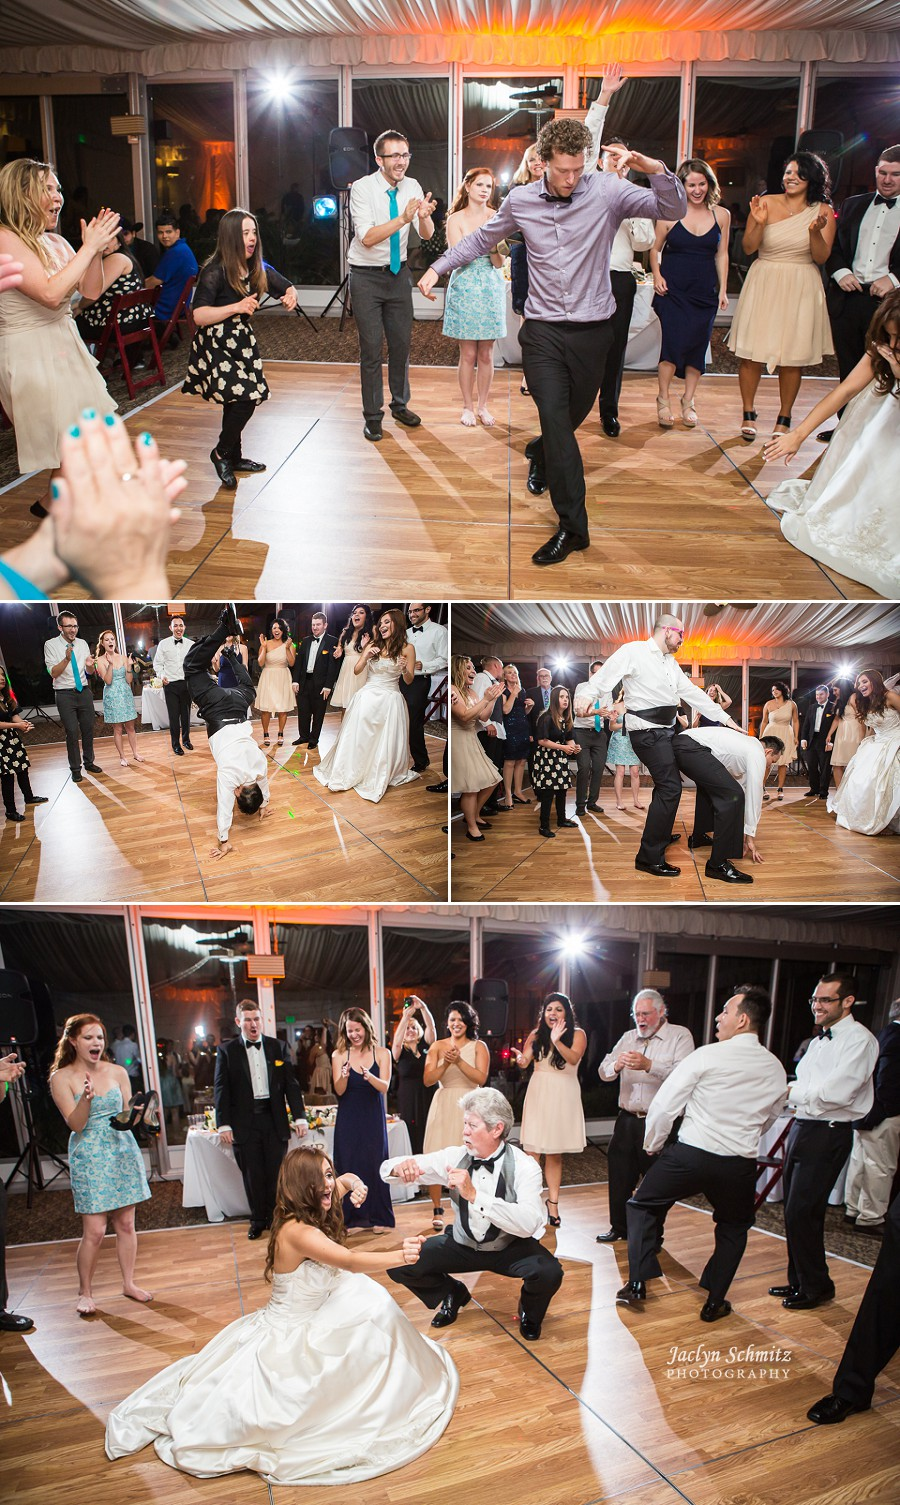 crazy fun energetic dancing at reception